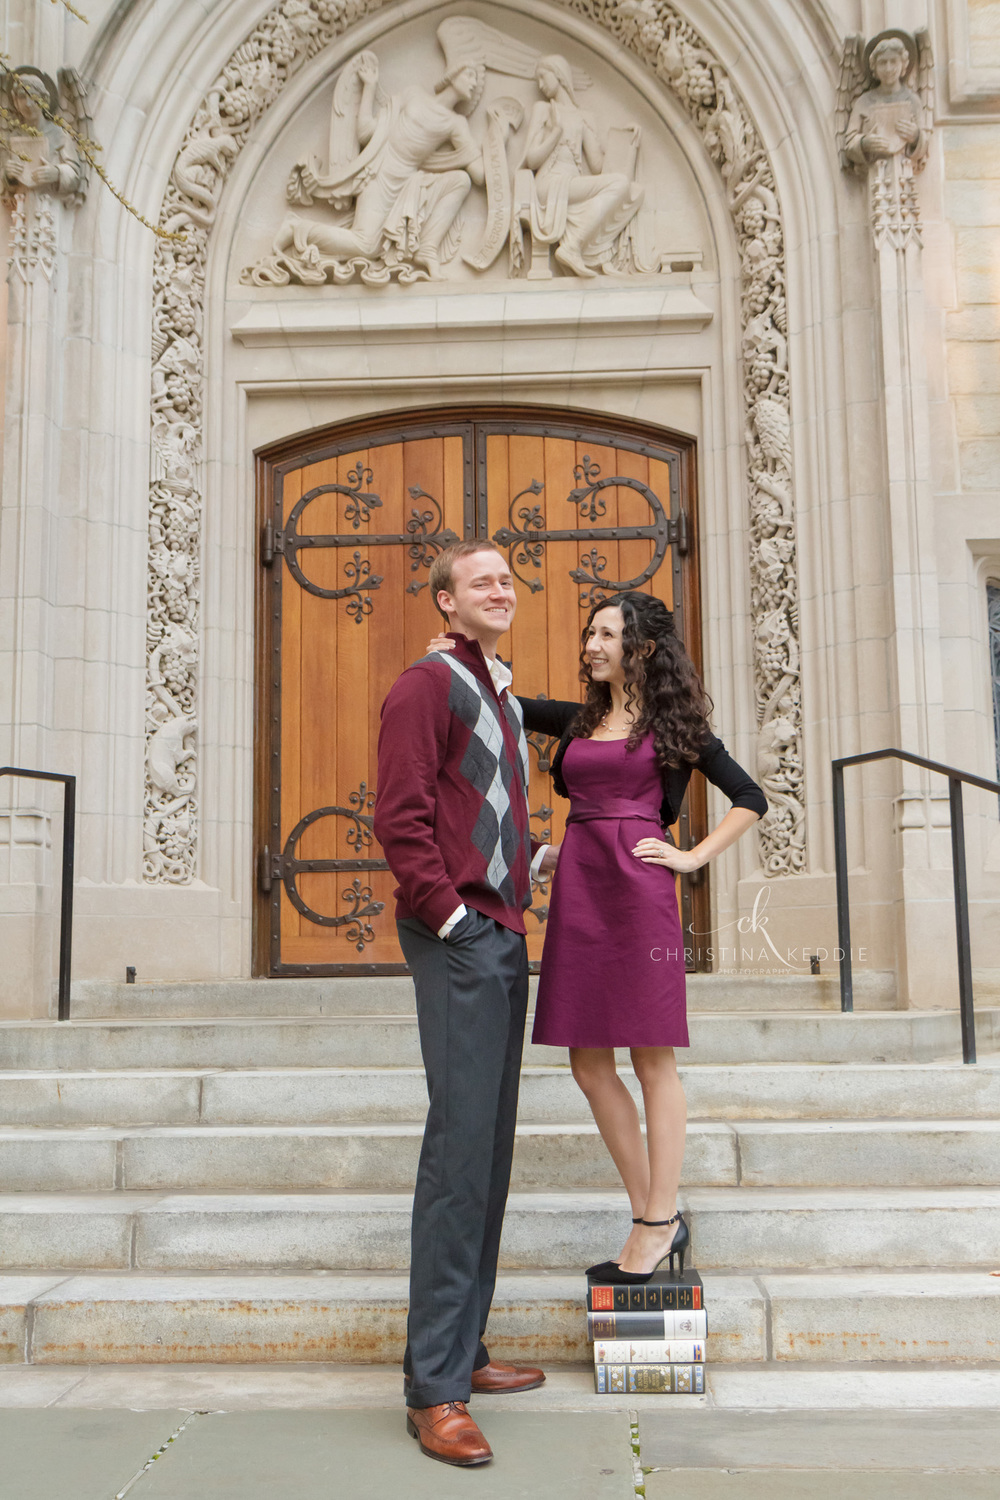 Engaged couple with short fiancee standing on books | Christina Keddie Photography | Princeton NJ engagement photographer